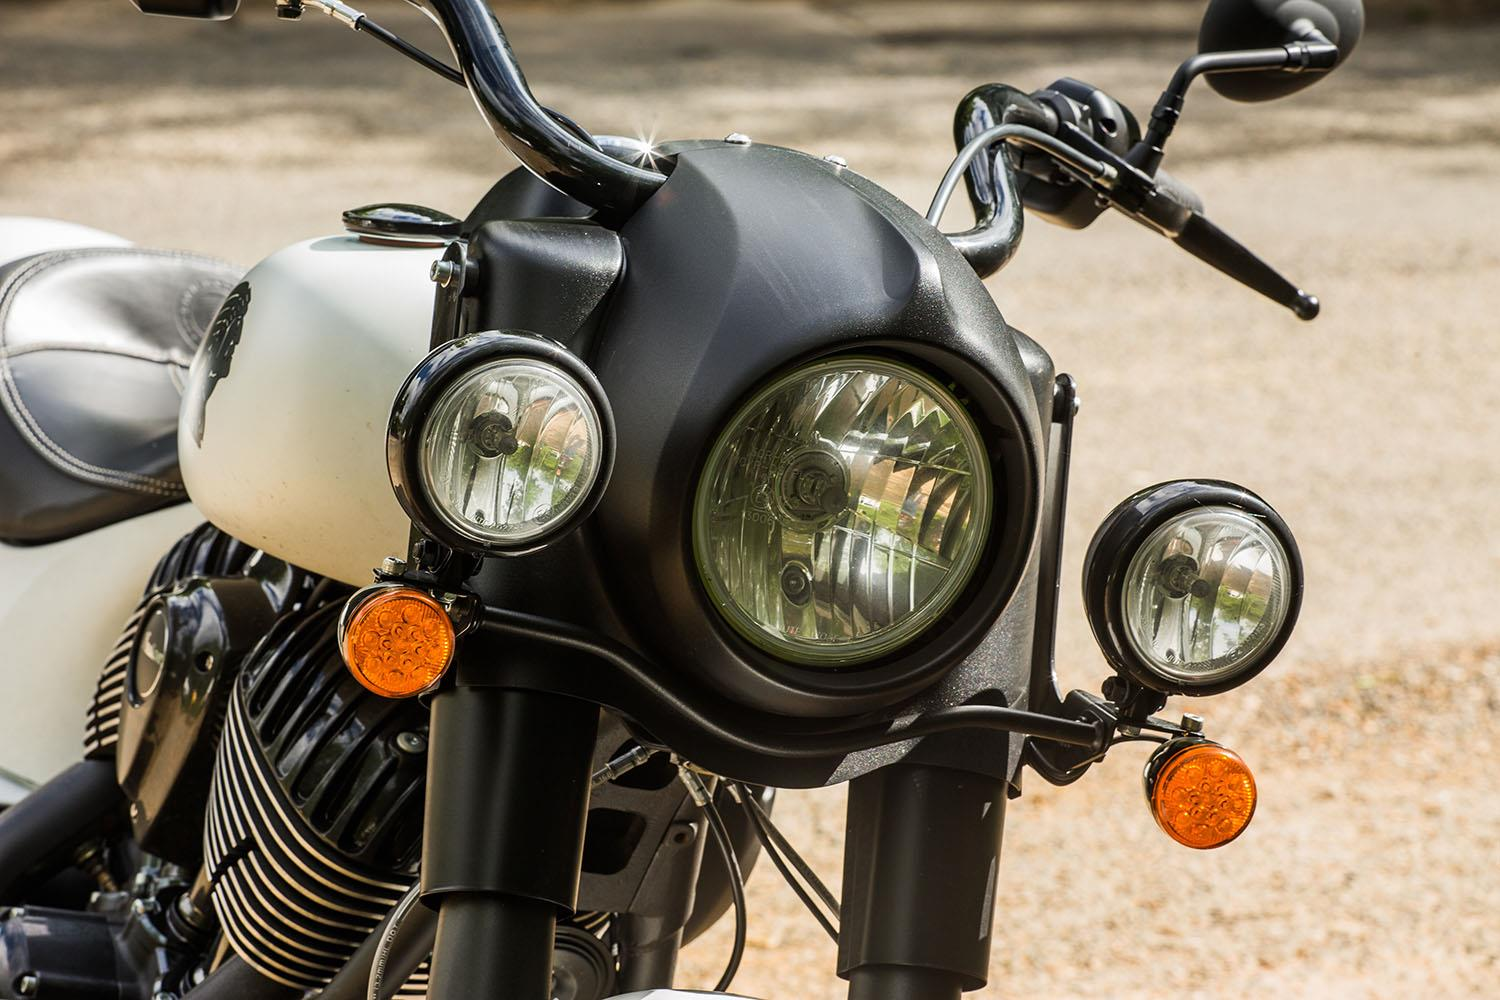 Indian Springfield Dark Horse headlight